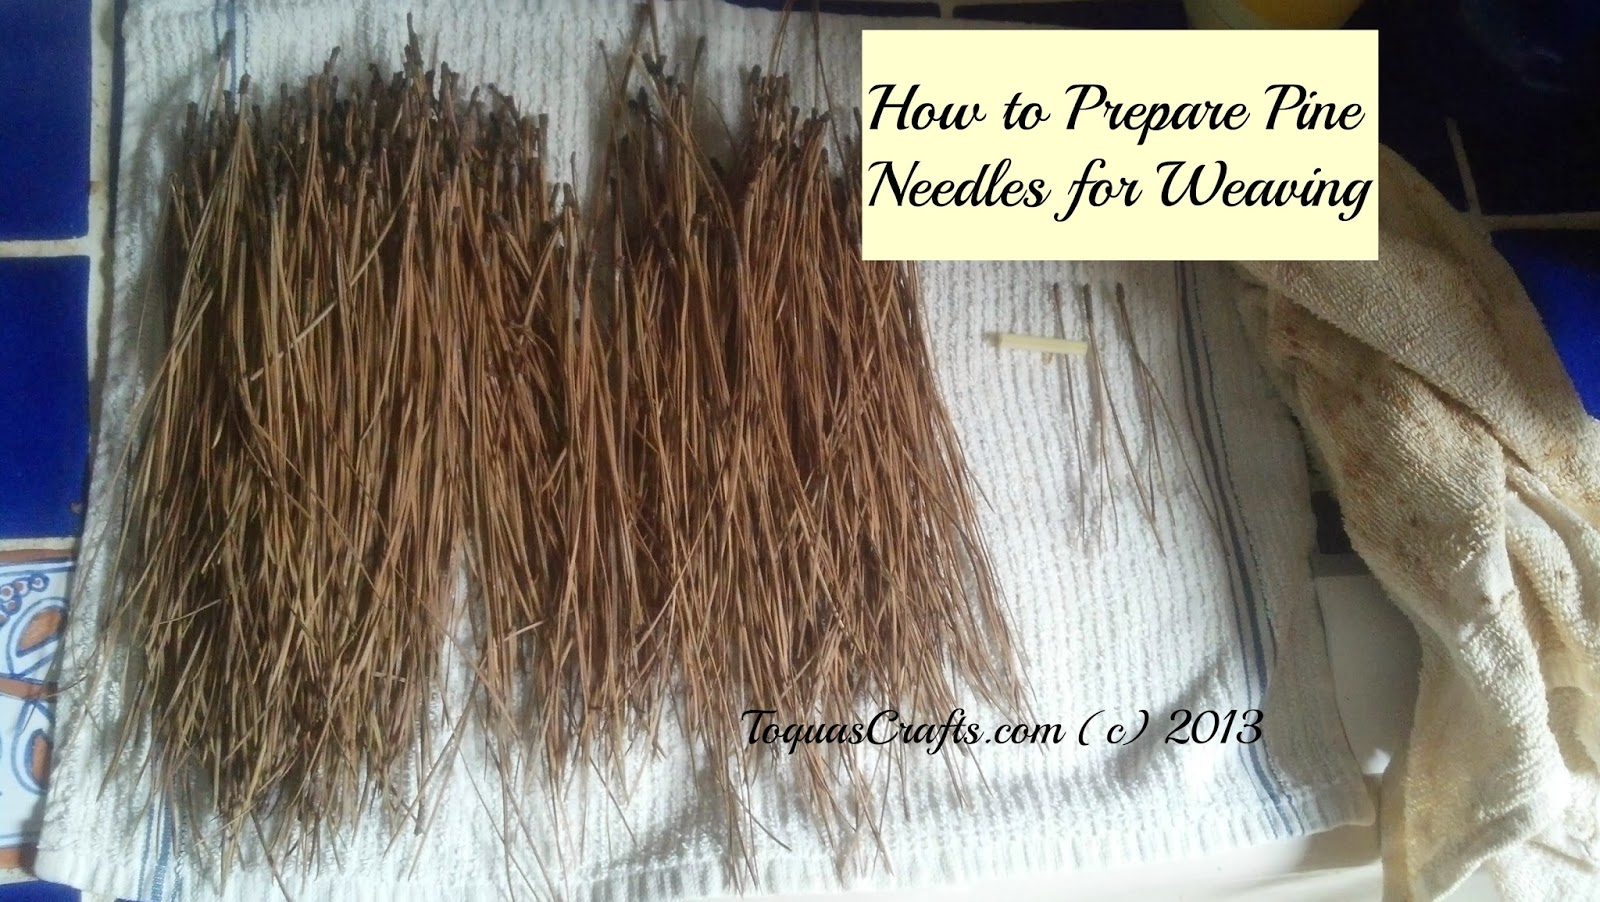 Toquas Crafts How To Prepare Pine Needles For Weaving